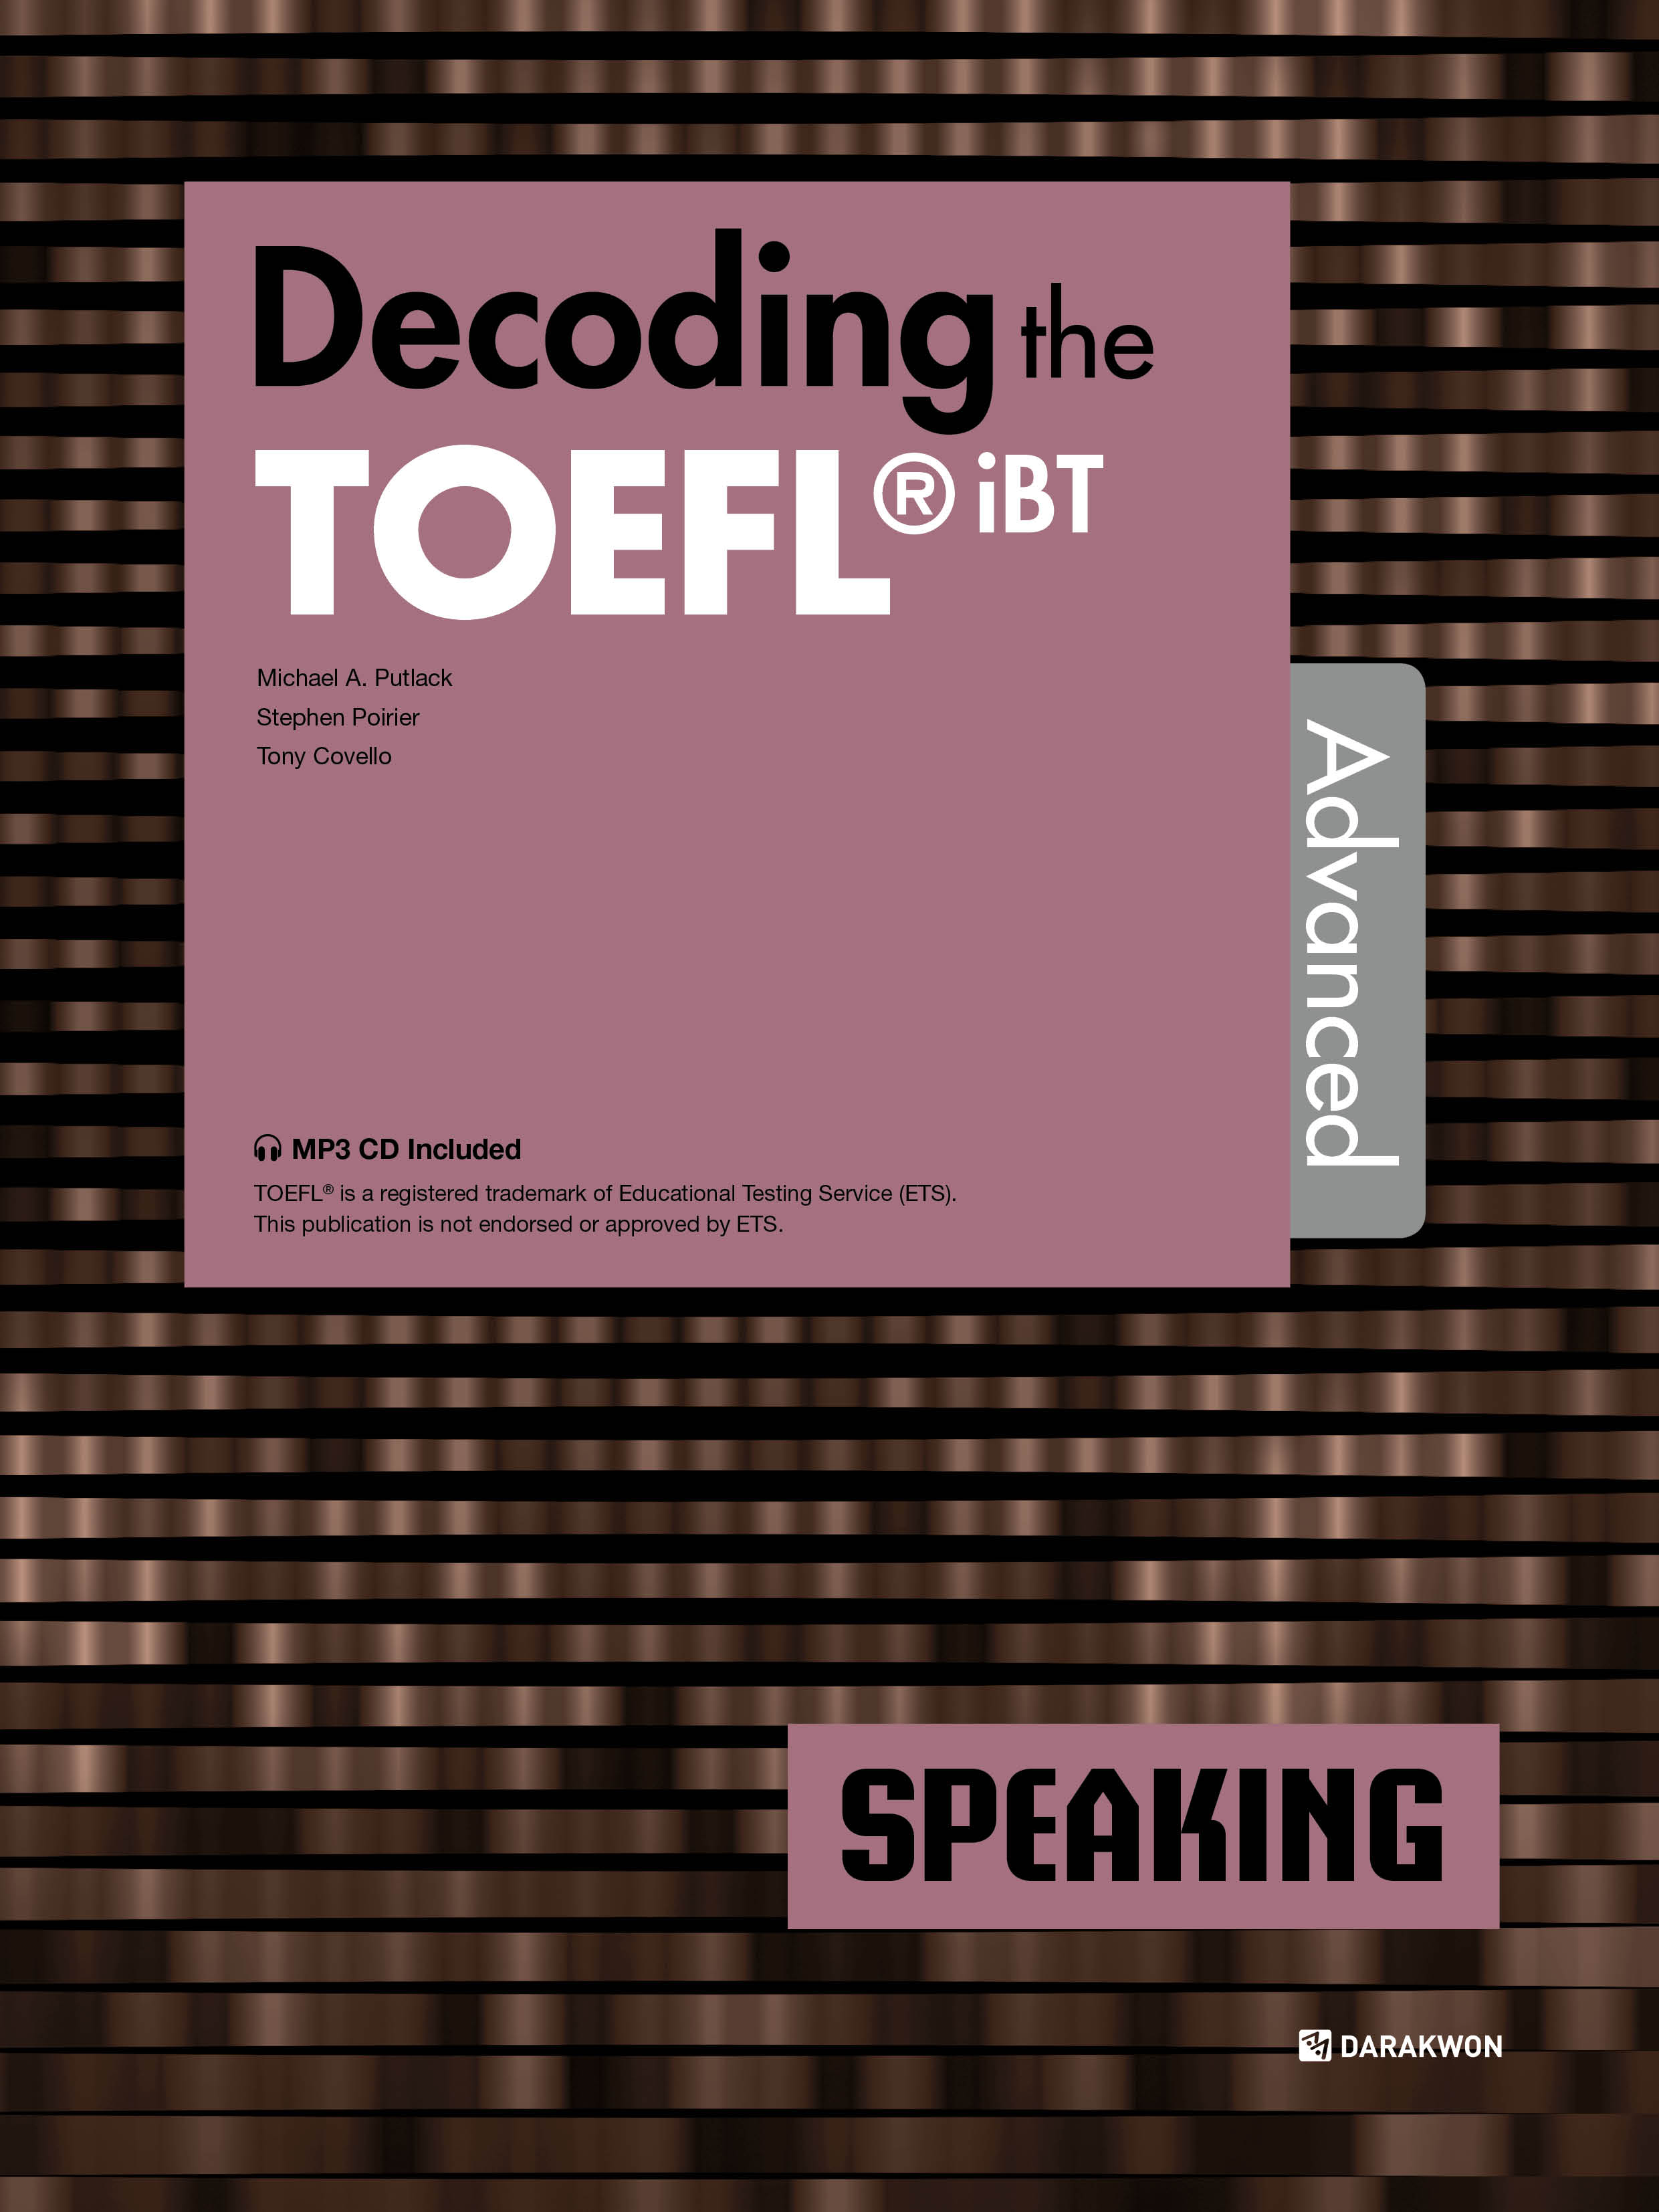 [Decoding the TOEFL iBT Actual Test] Decoding the TOEFL iBT SPEAKING Advanced